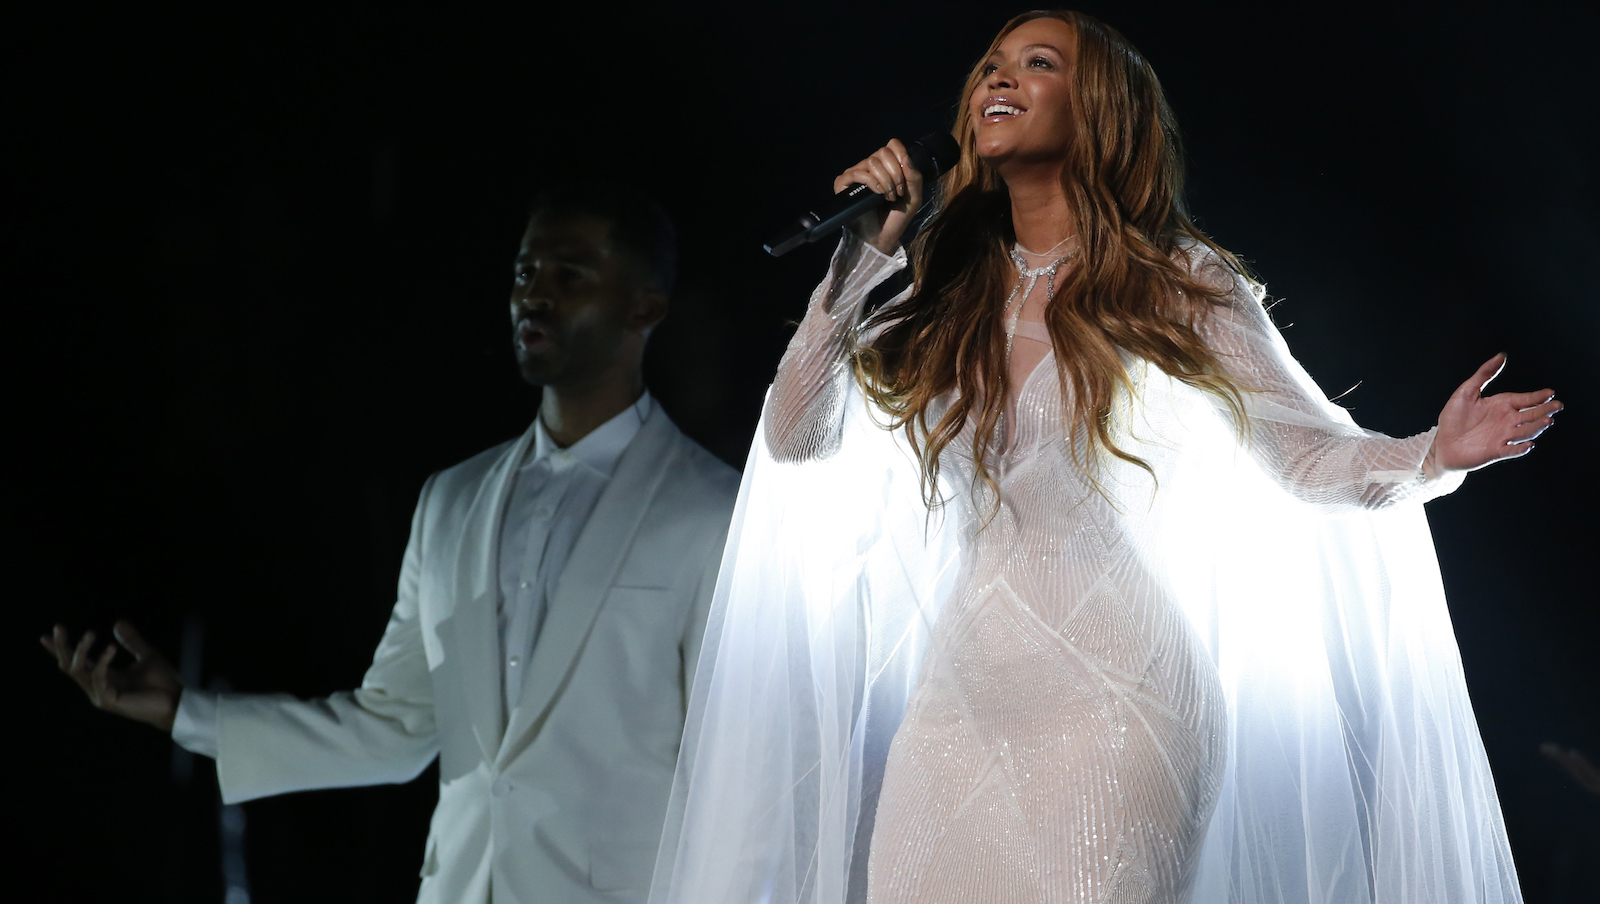 """Beyonce performs """"Take My Hand"""" at the 57th annual Grammy Awards in Los Angeles, California February 8, 2015.   REUTERS/Lucy Nicholson (UNITED STATES  - Tags: ENTERTAINMENT)   (GRAMMYS-SHOW)  - RTR4OREX"""